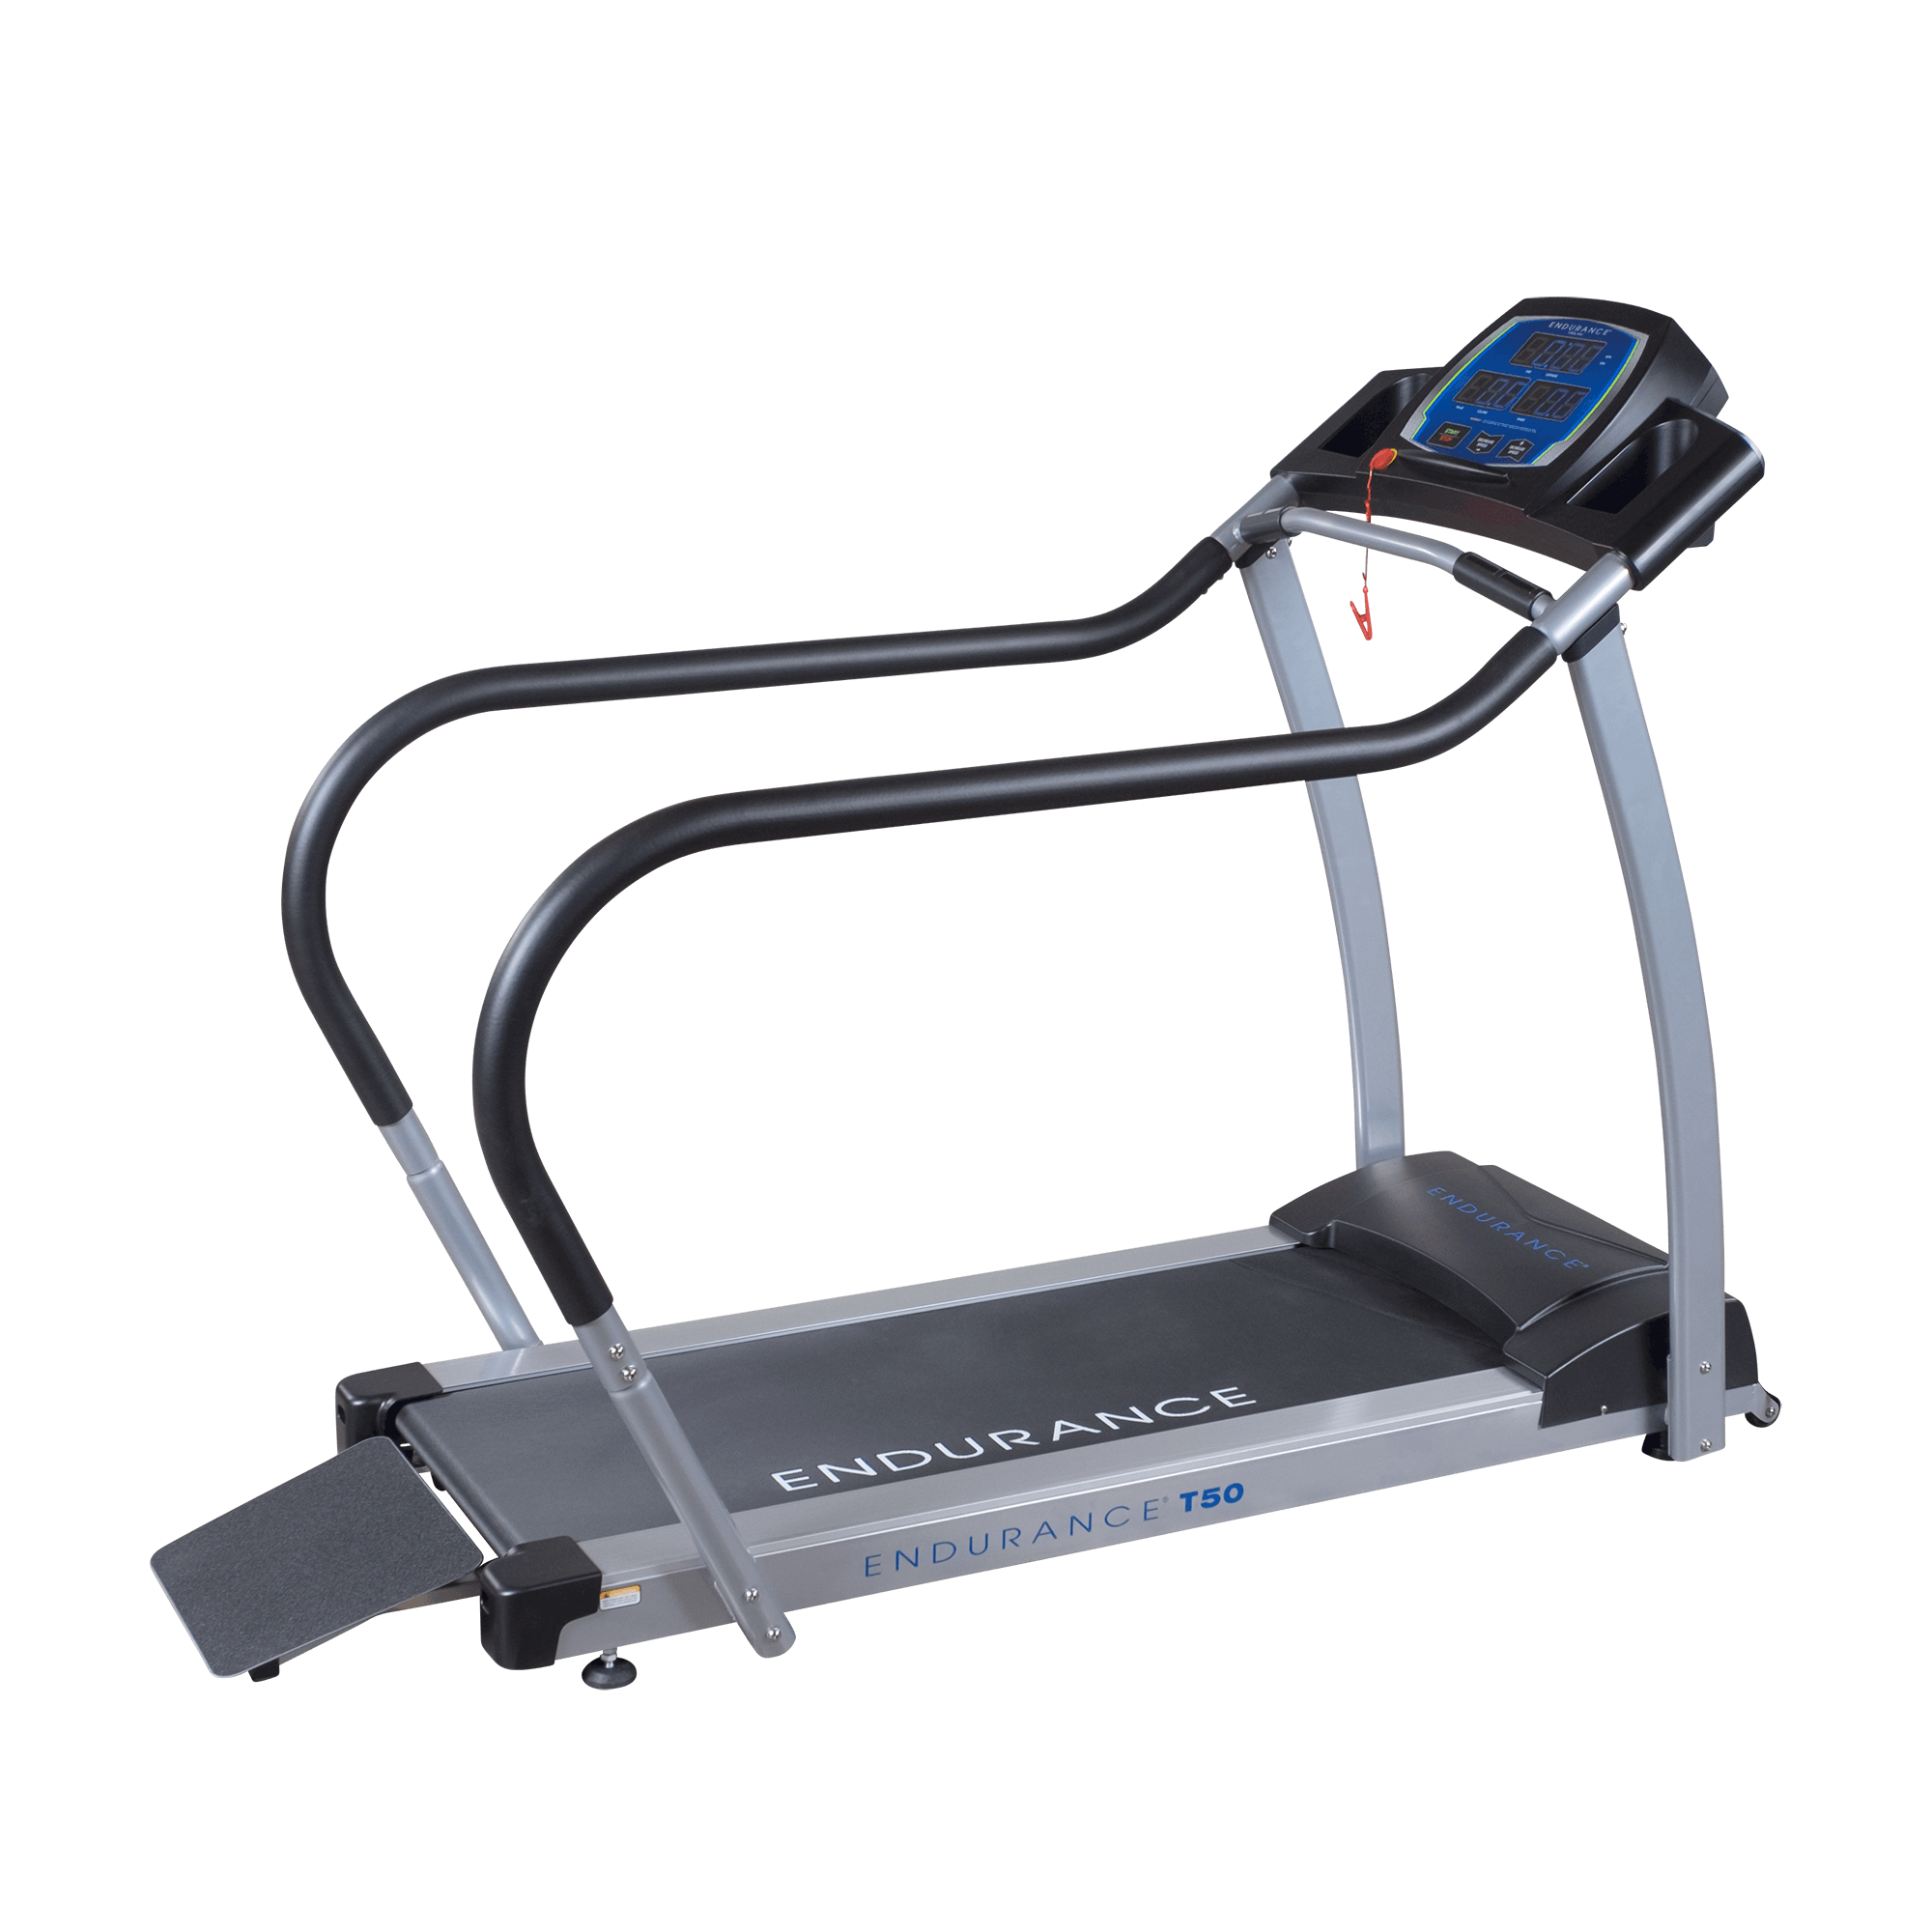 Bodysolid ENDURANCE T 50